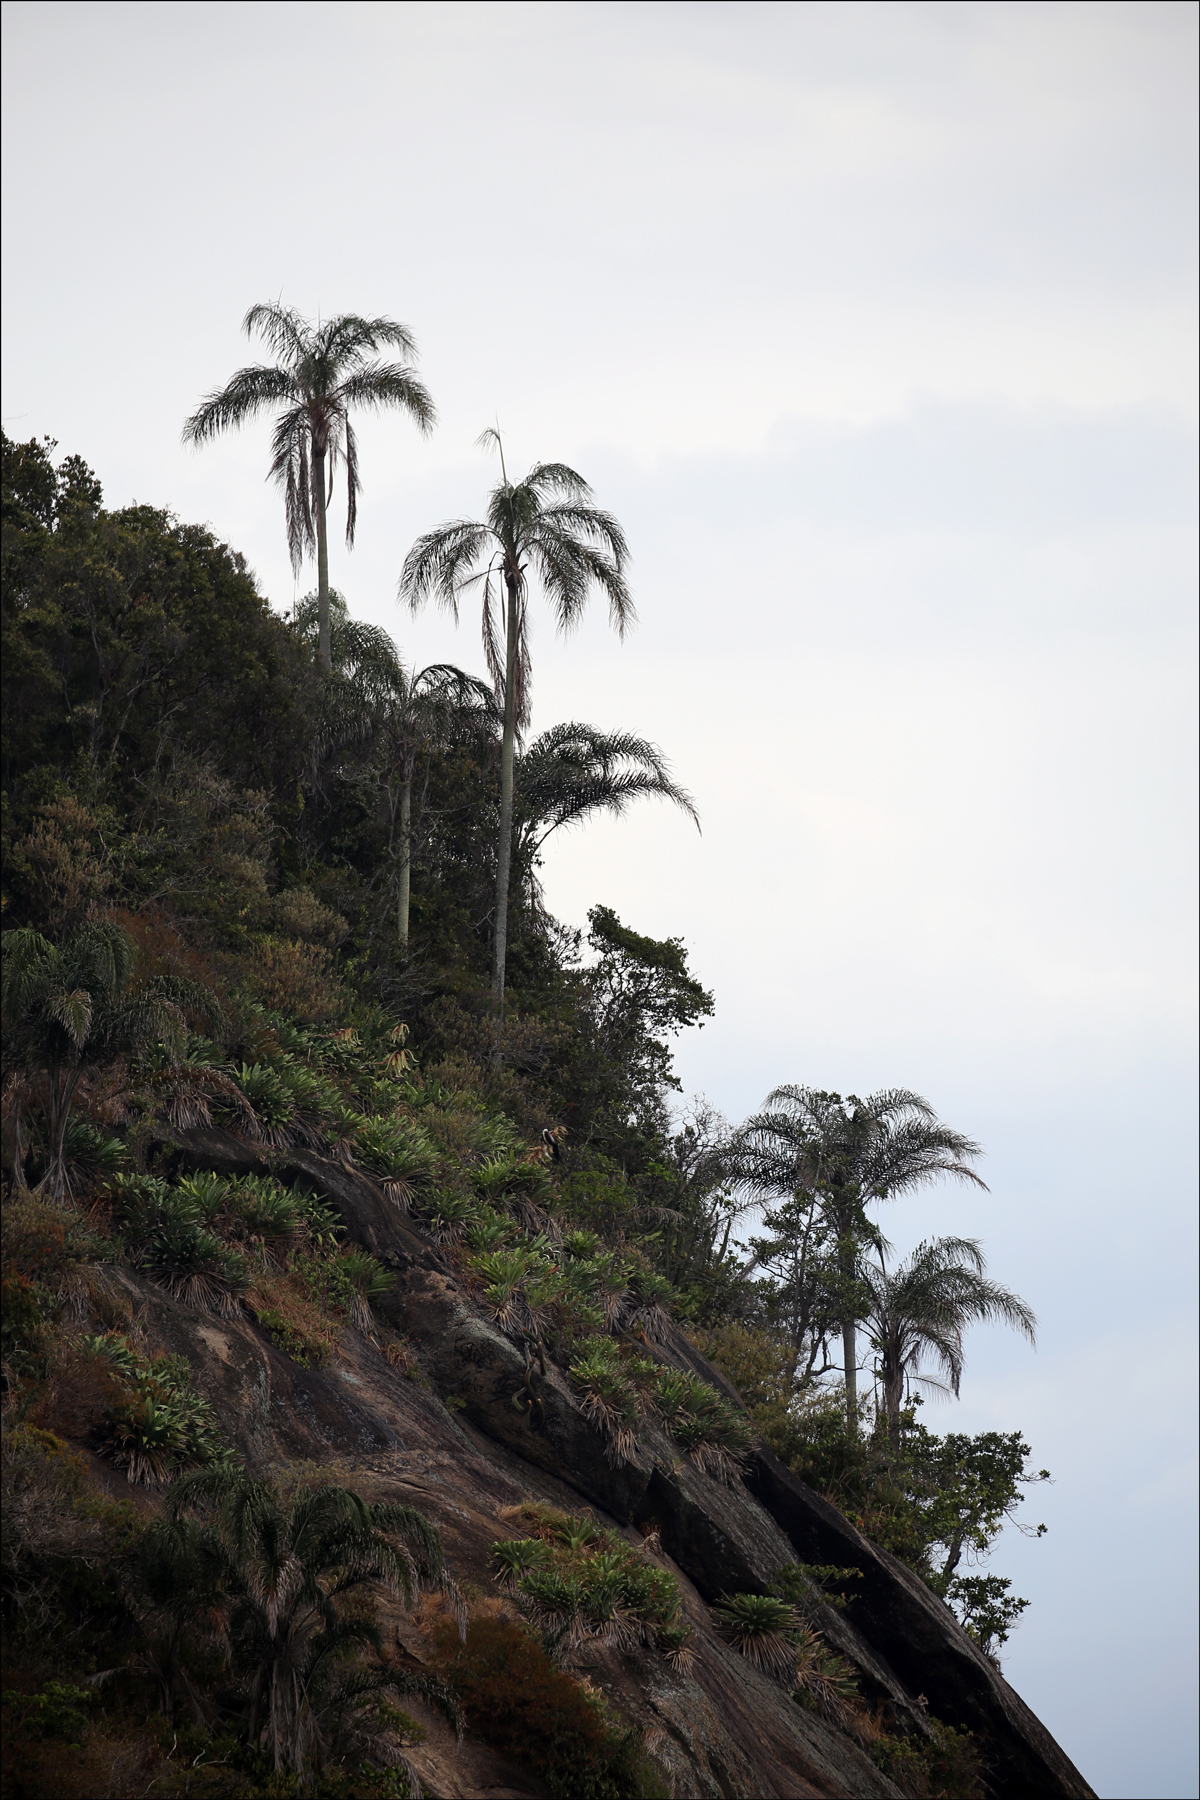 Hillside Palms at Copacabana Beach